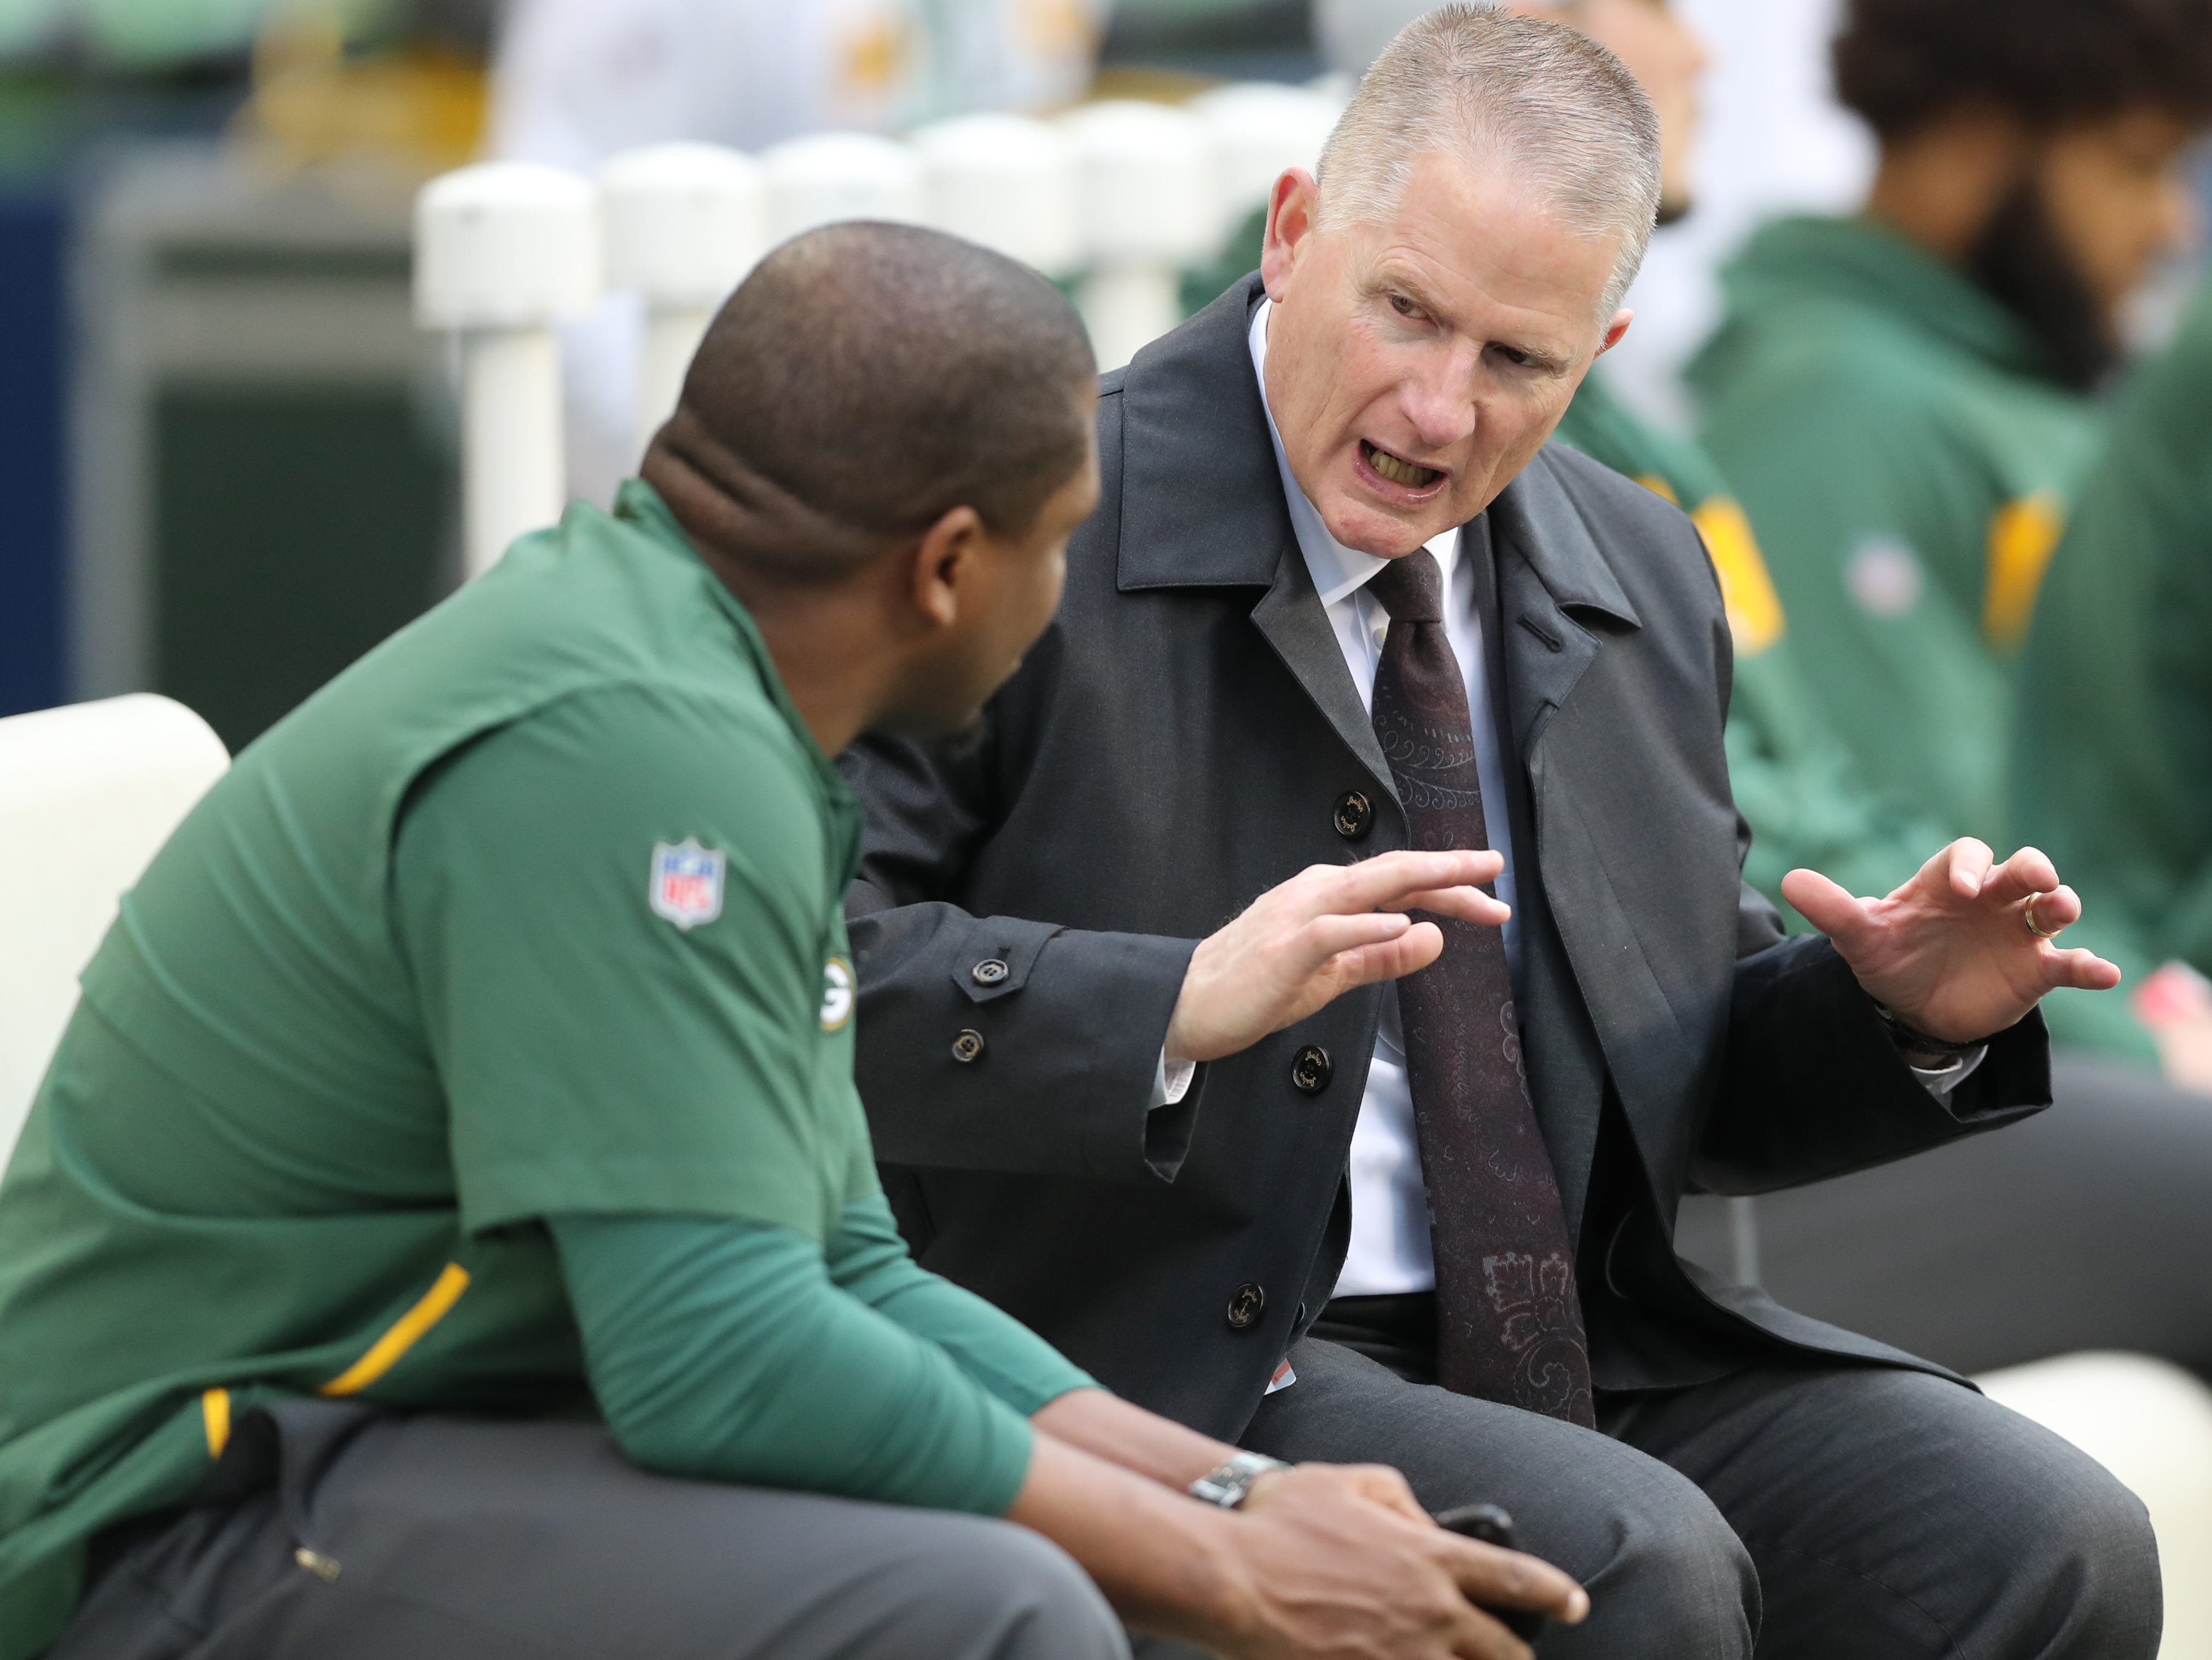 Packers Executive Vice President/Director of Football Operations Russ Ball talks with a Packers staff member on the sidelines before the game against the Seattle Seahawks at CenturyLink Field Thursday, November 15, 2018 in Seattle, WA. Jim Matthews/USA TODAY NETWORK-Wis